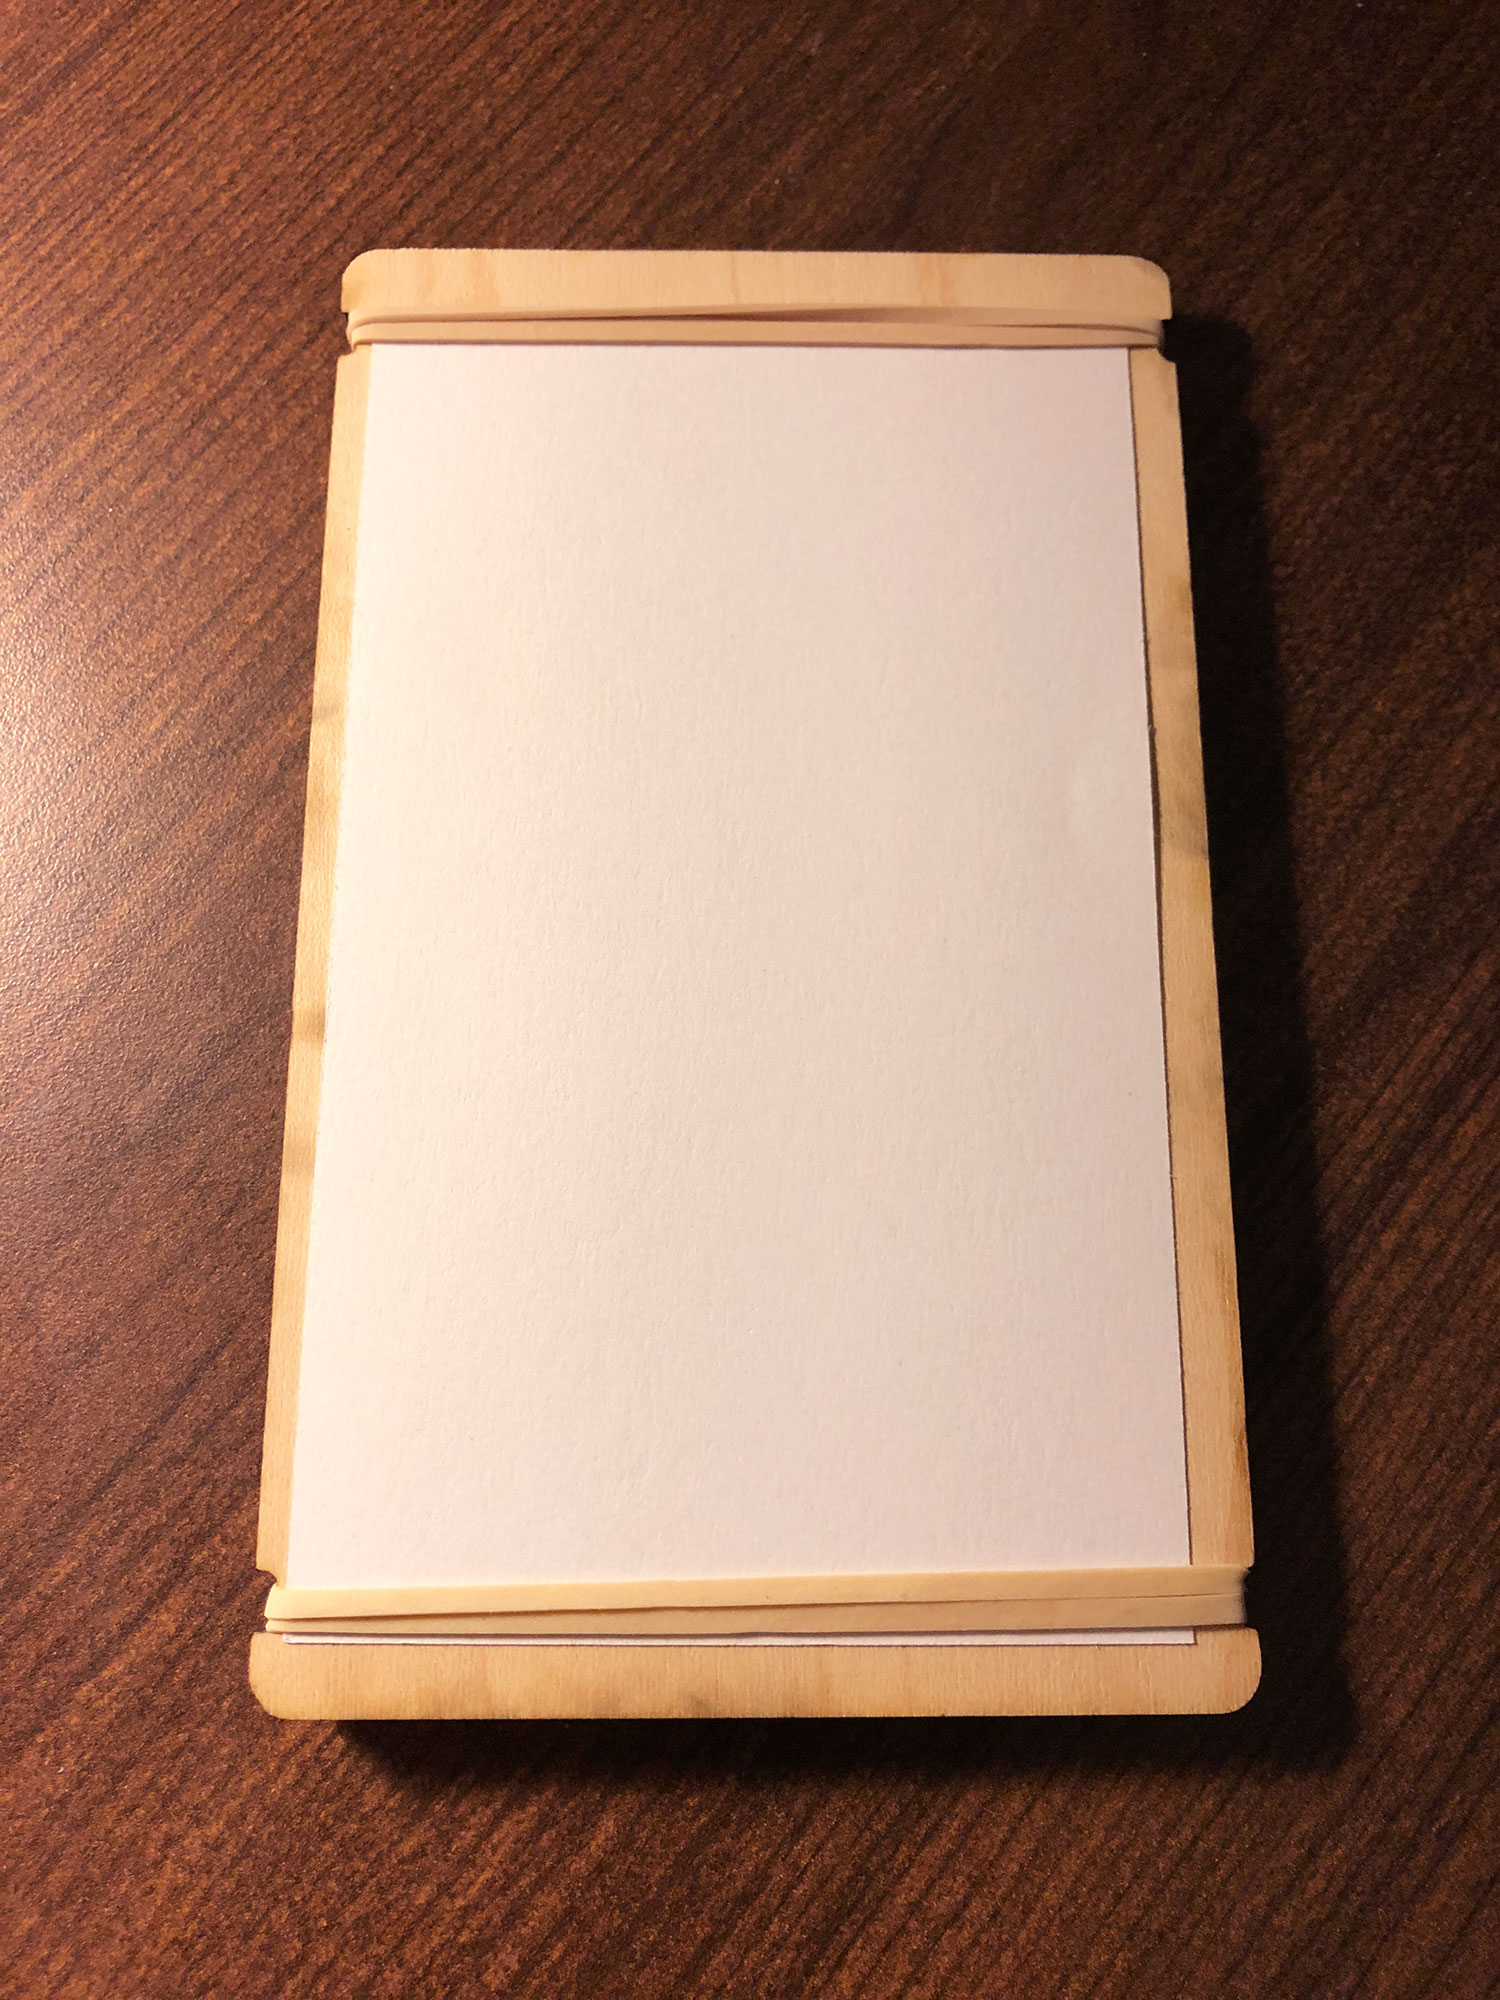 index-card-holder-2.jpg